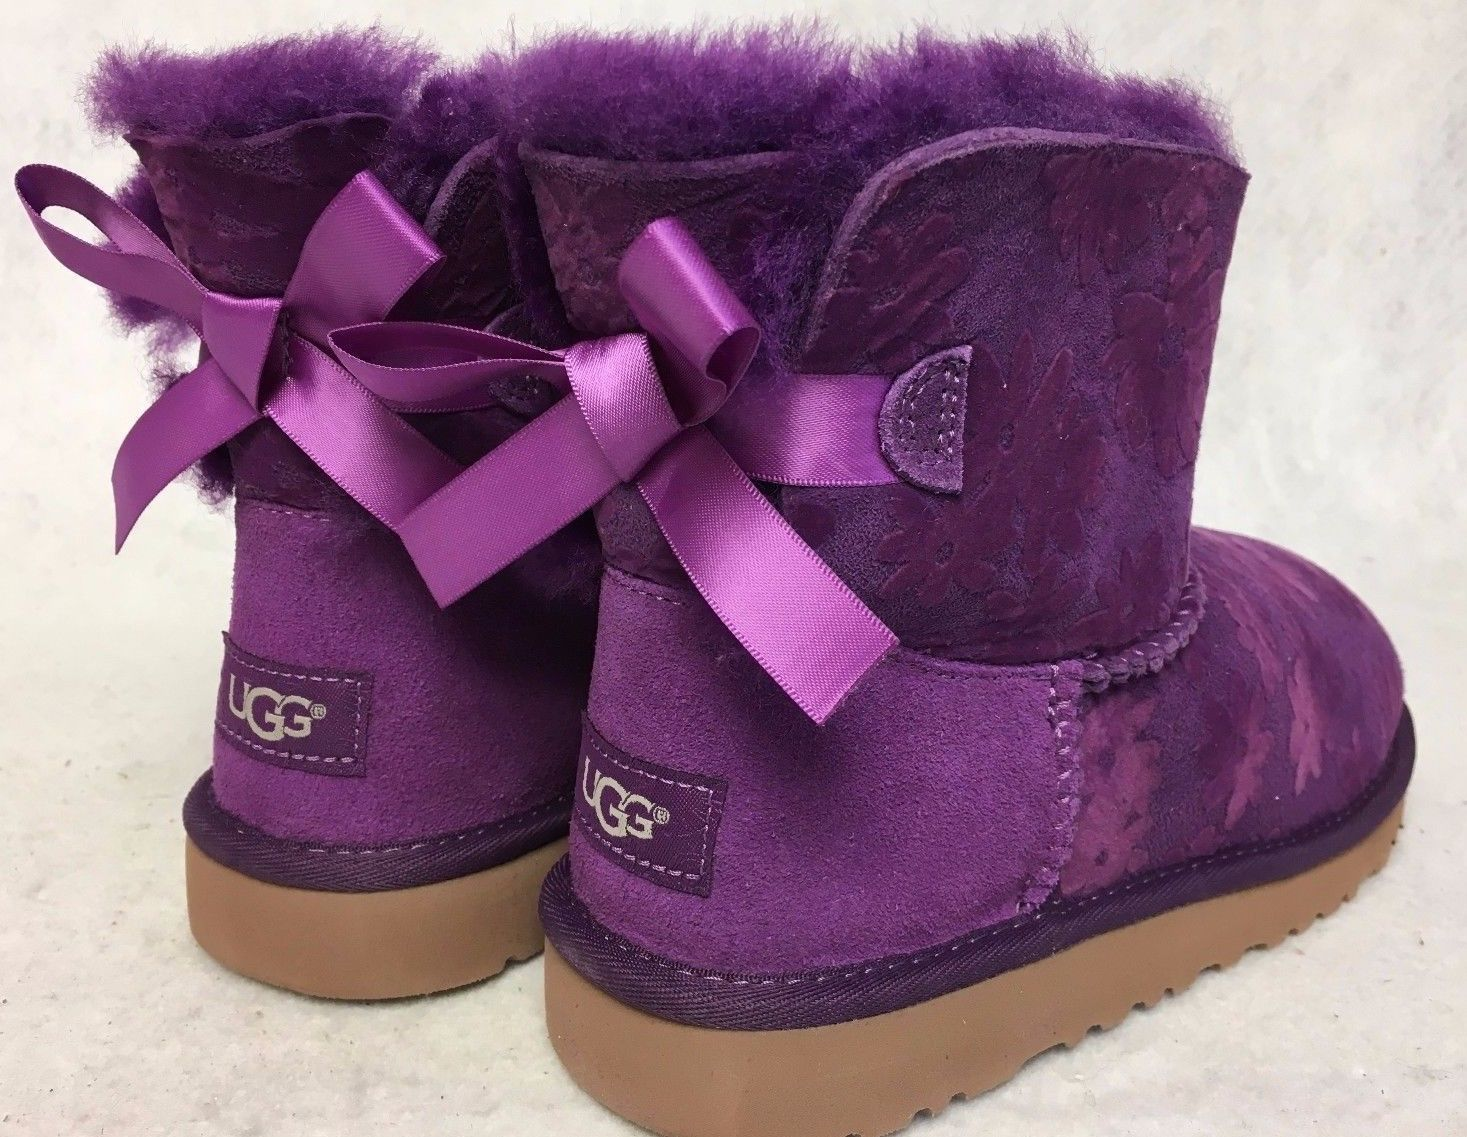 c19716db7a7 Baby Wear Ugg Australia Mini Bailey Bow Flowers Girl's Toddler Boots ...